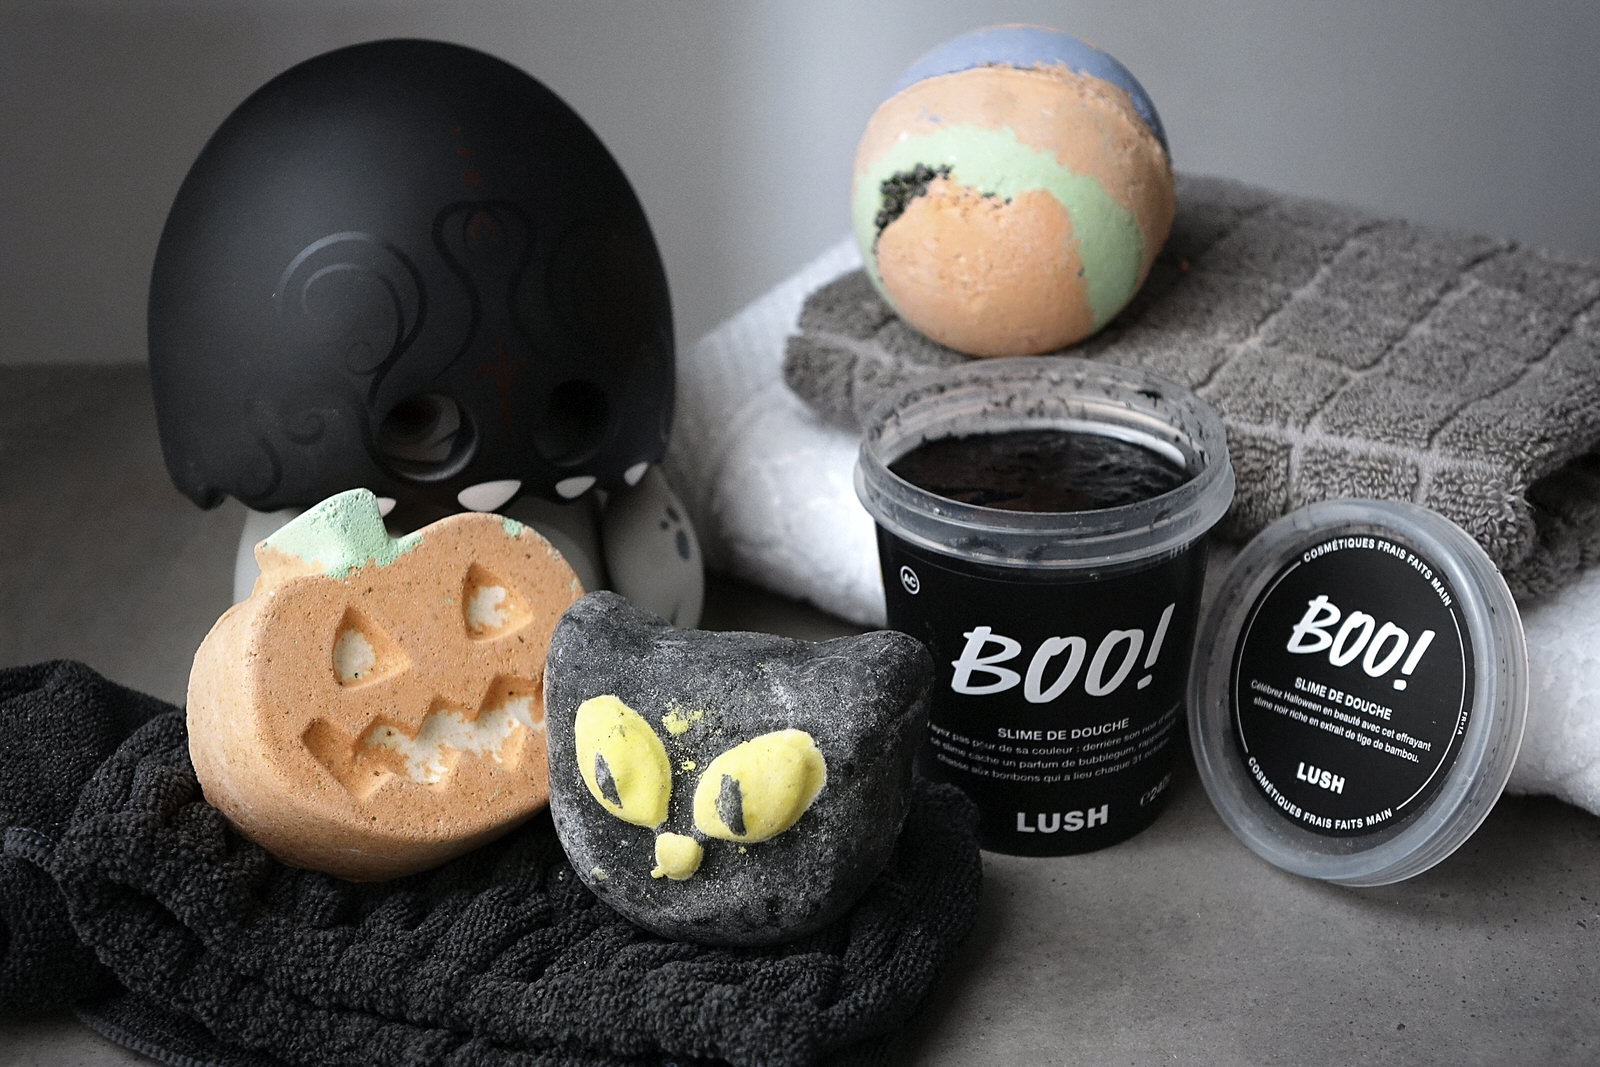 La collection de Lush pour Halloween 2019